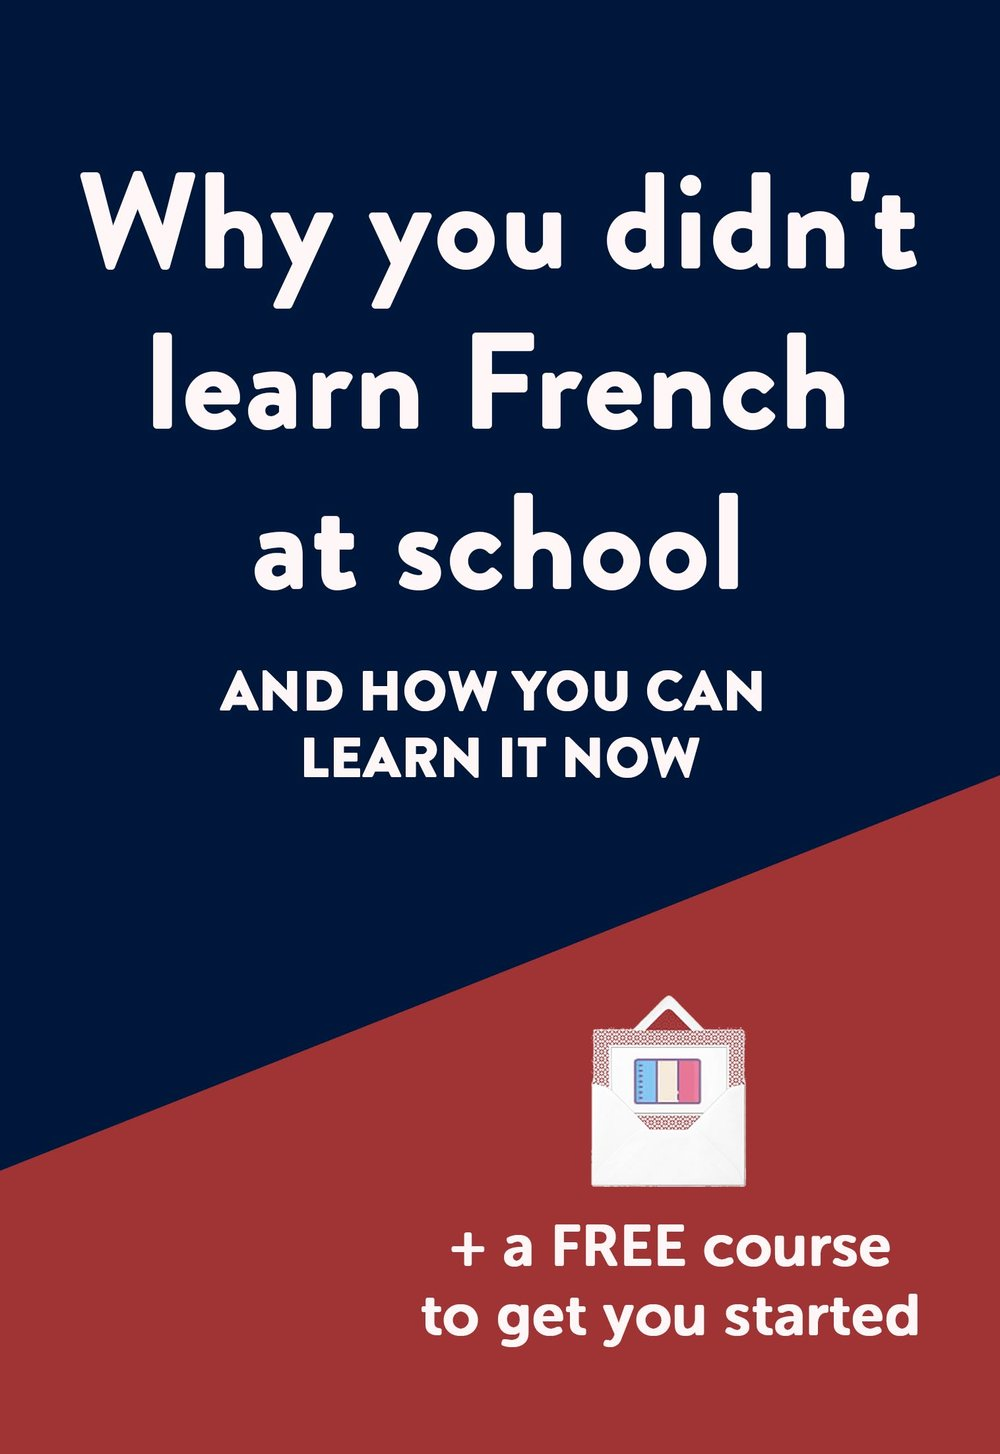 why-learn-french-school-free-course.jpg